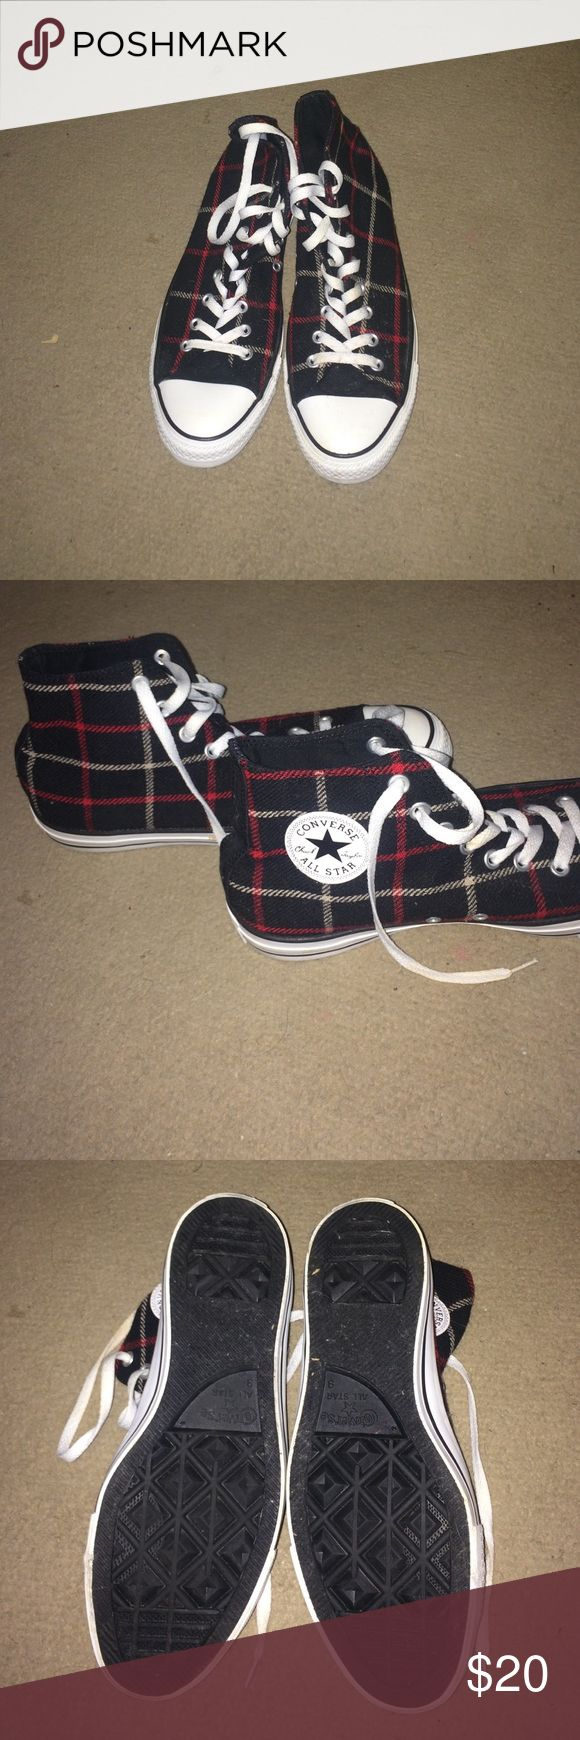 Converse High Top Plaid Shoes [mens 9][womens 11] Converse High Top Plaid shoes. Fits a men's 9 or women's 11. Great condition. Worn a few times..just don't like them. No stains or rips. Make any offer! Converse Shoes Sneakers